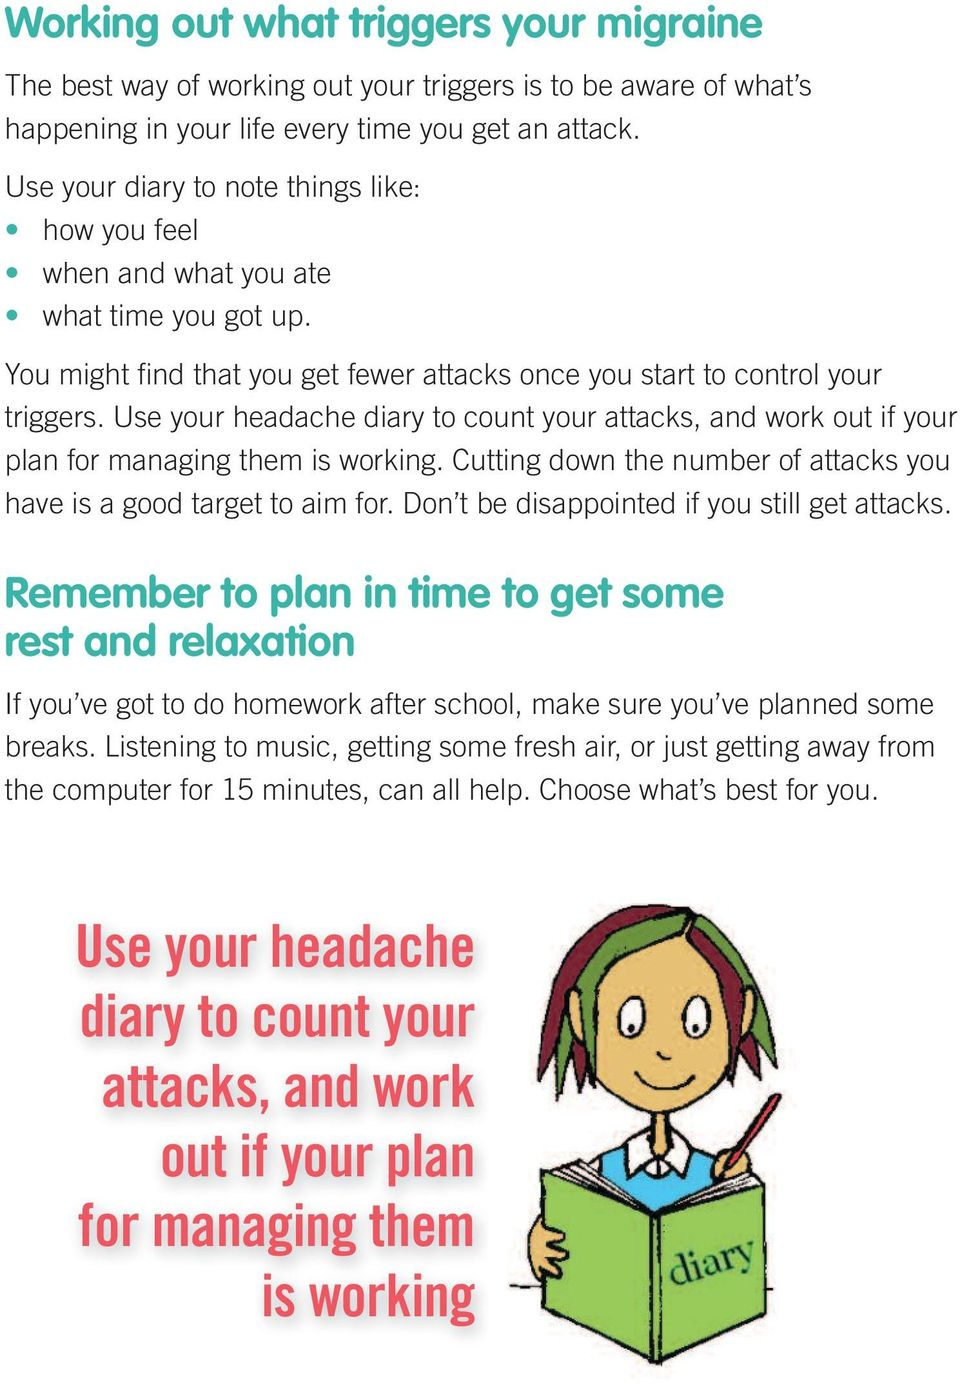 Use your headache diary to count your attacks, and work out if your plan for managing them is working. Cutting down the number of attacks you have is a good target to aim for.